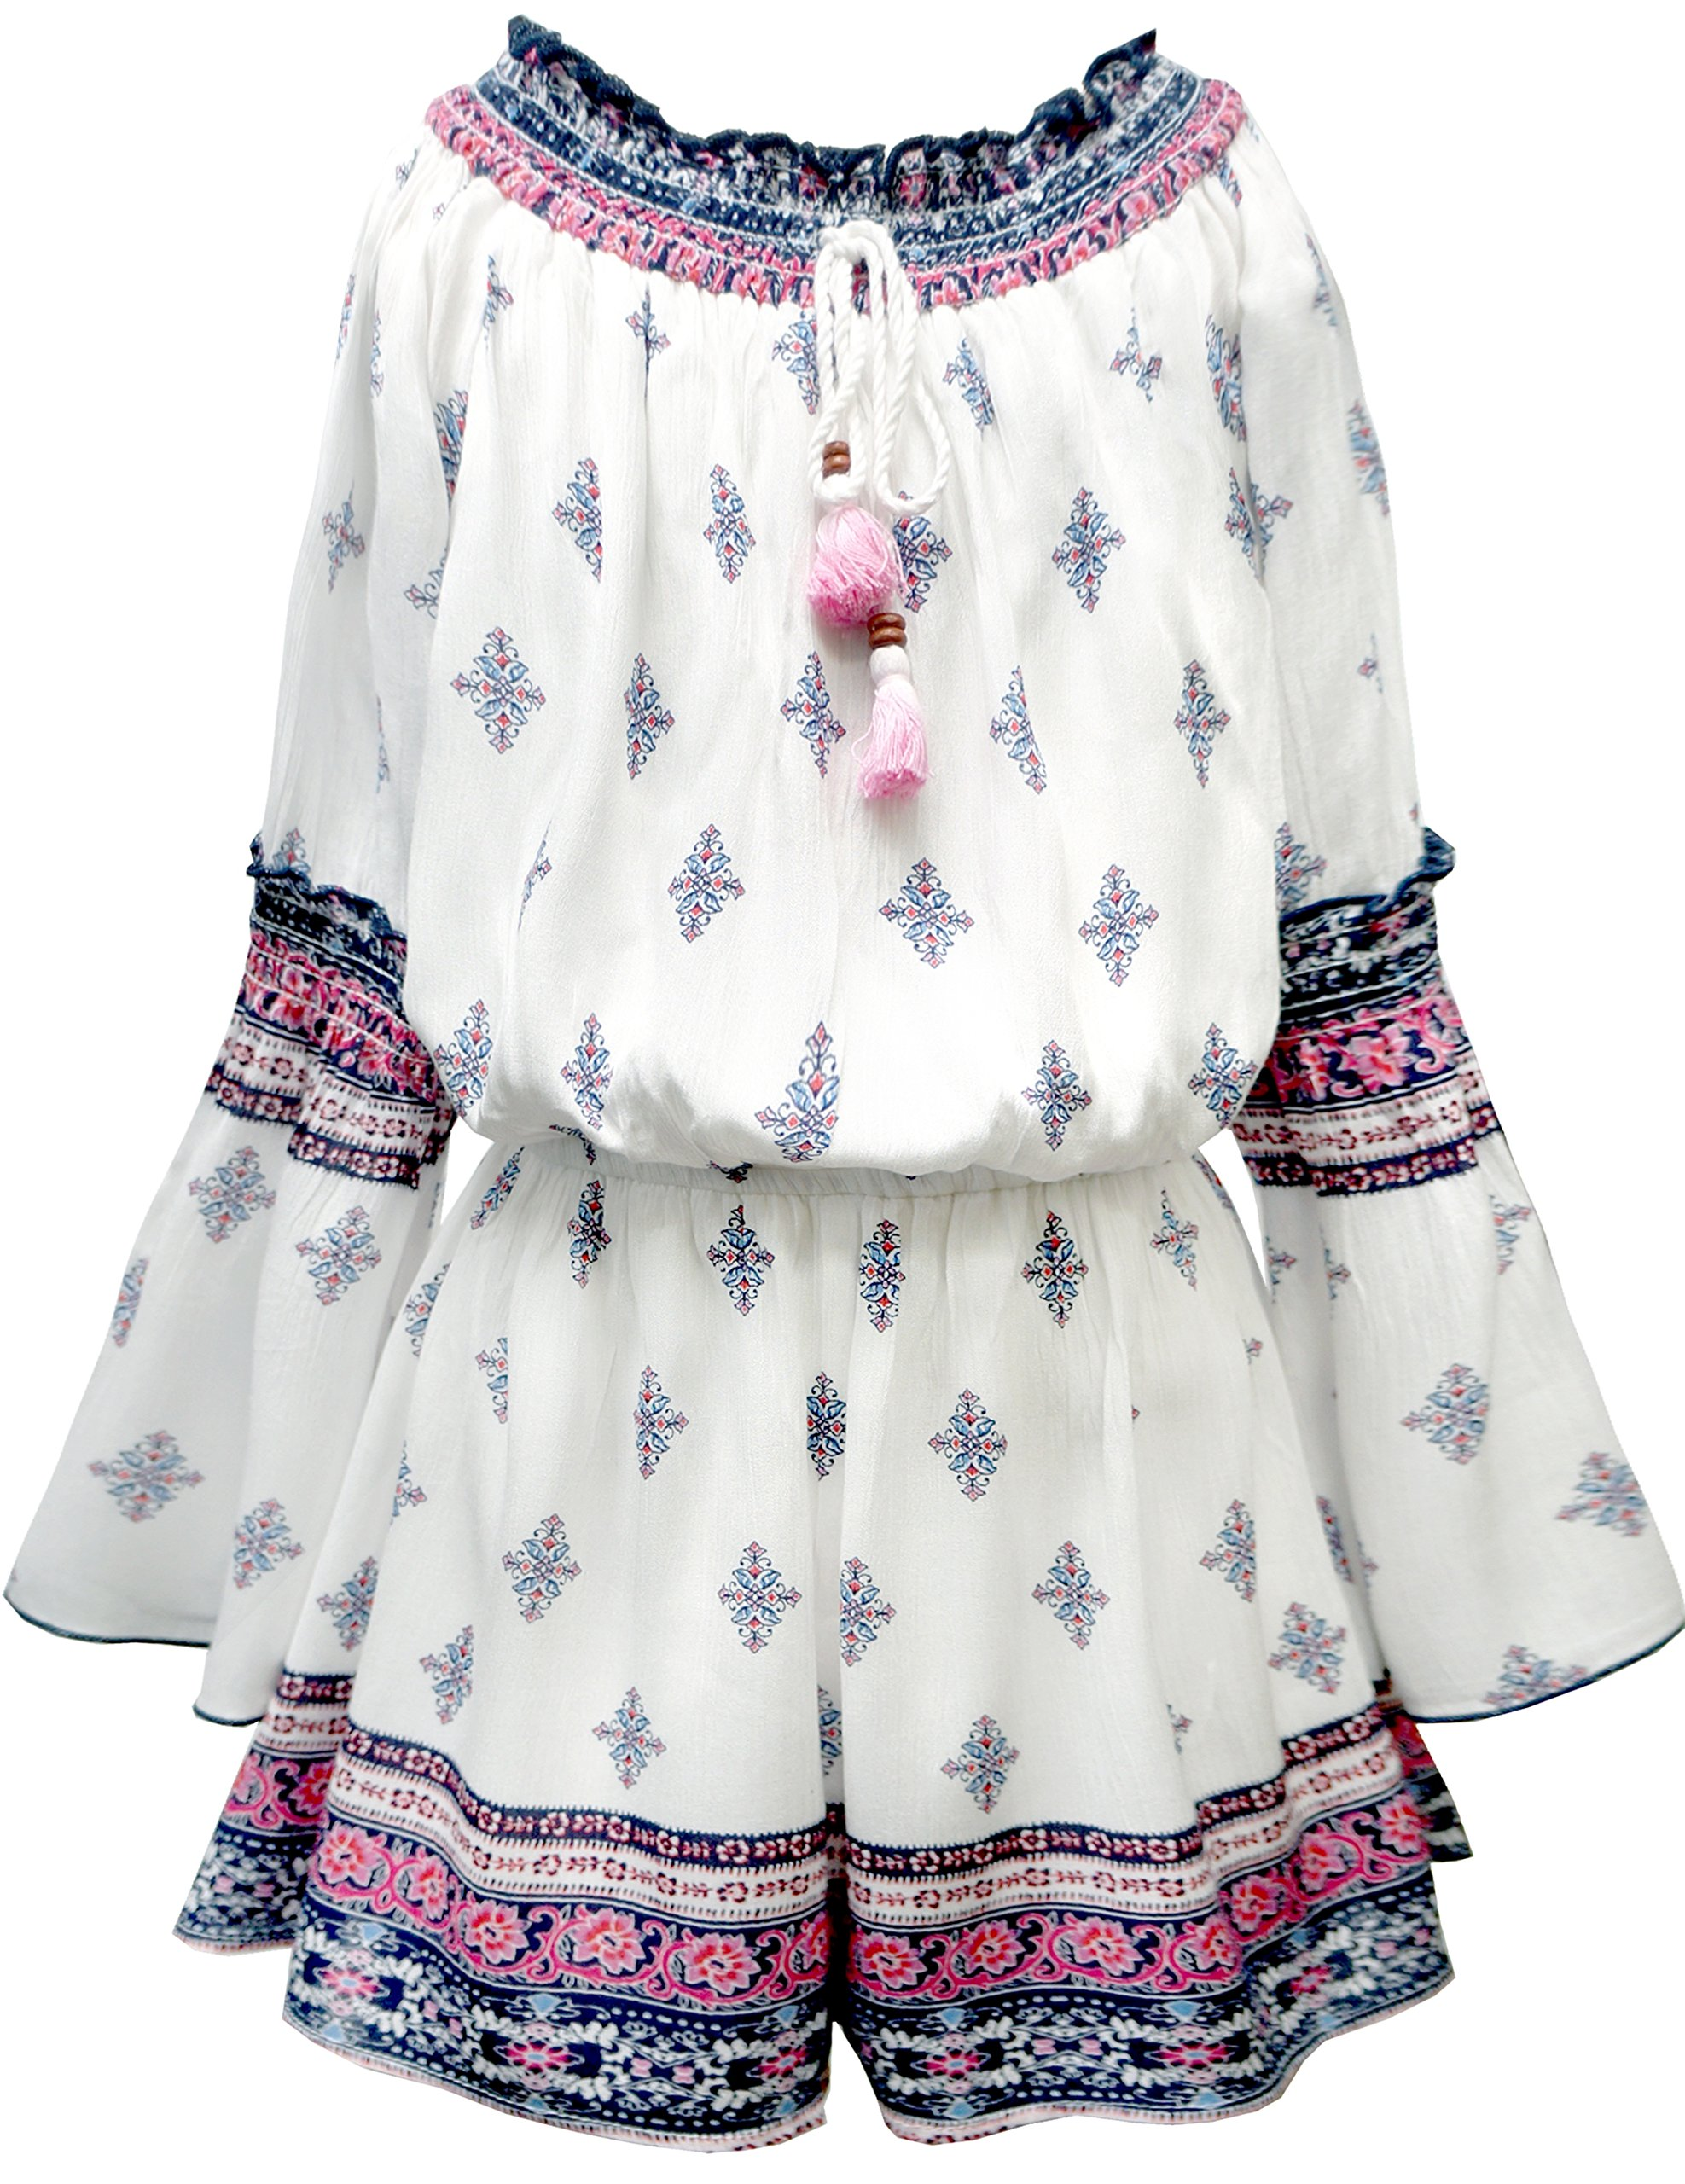 Truly Me, Big Girls Tween Long Sleeve Chiffon Romper (Many Options), 7-16 (Ivory Multi,12)